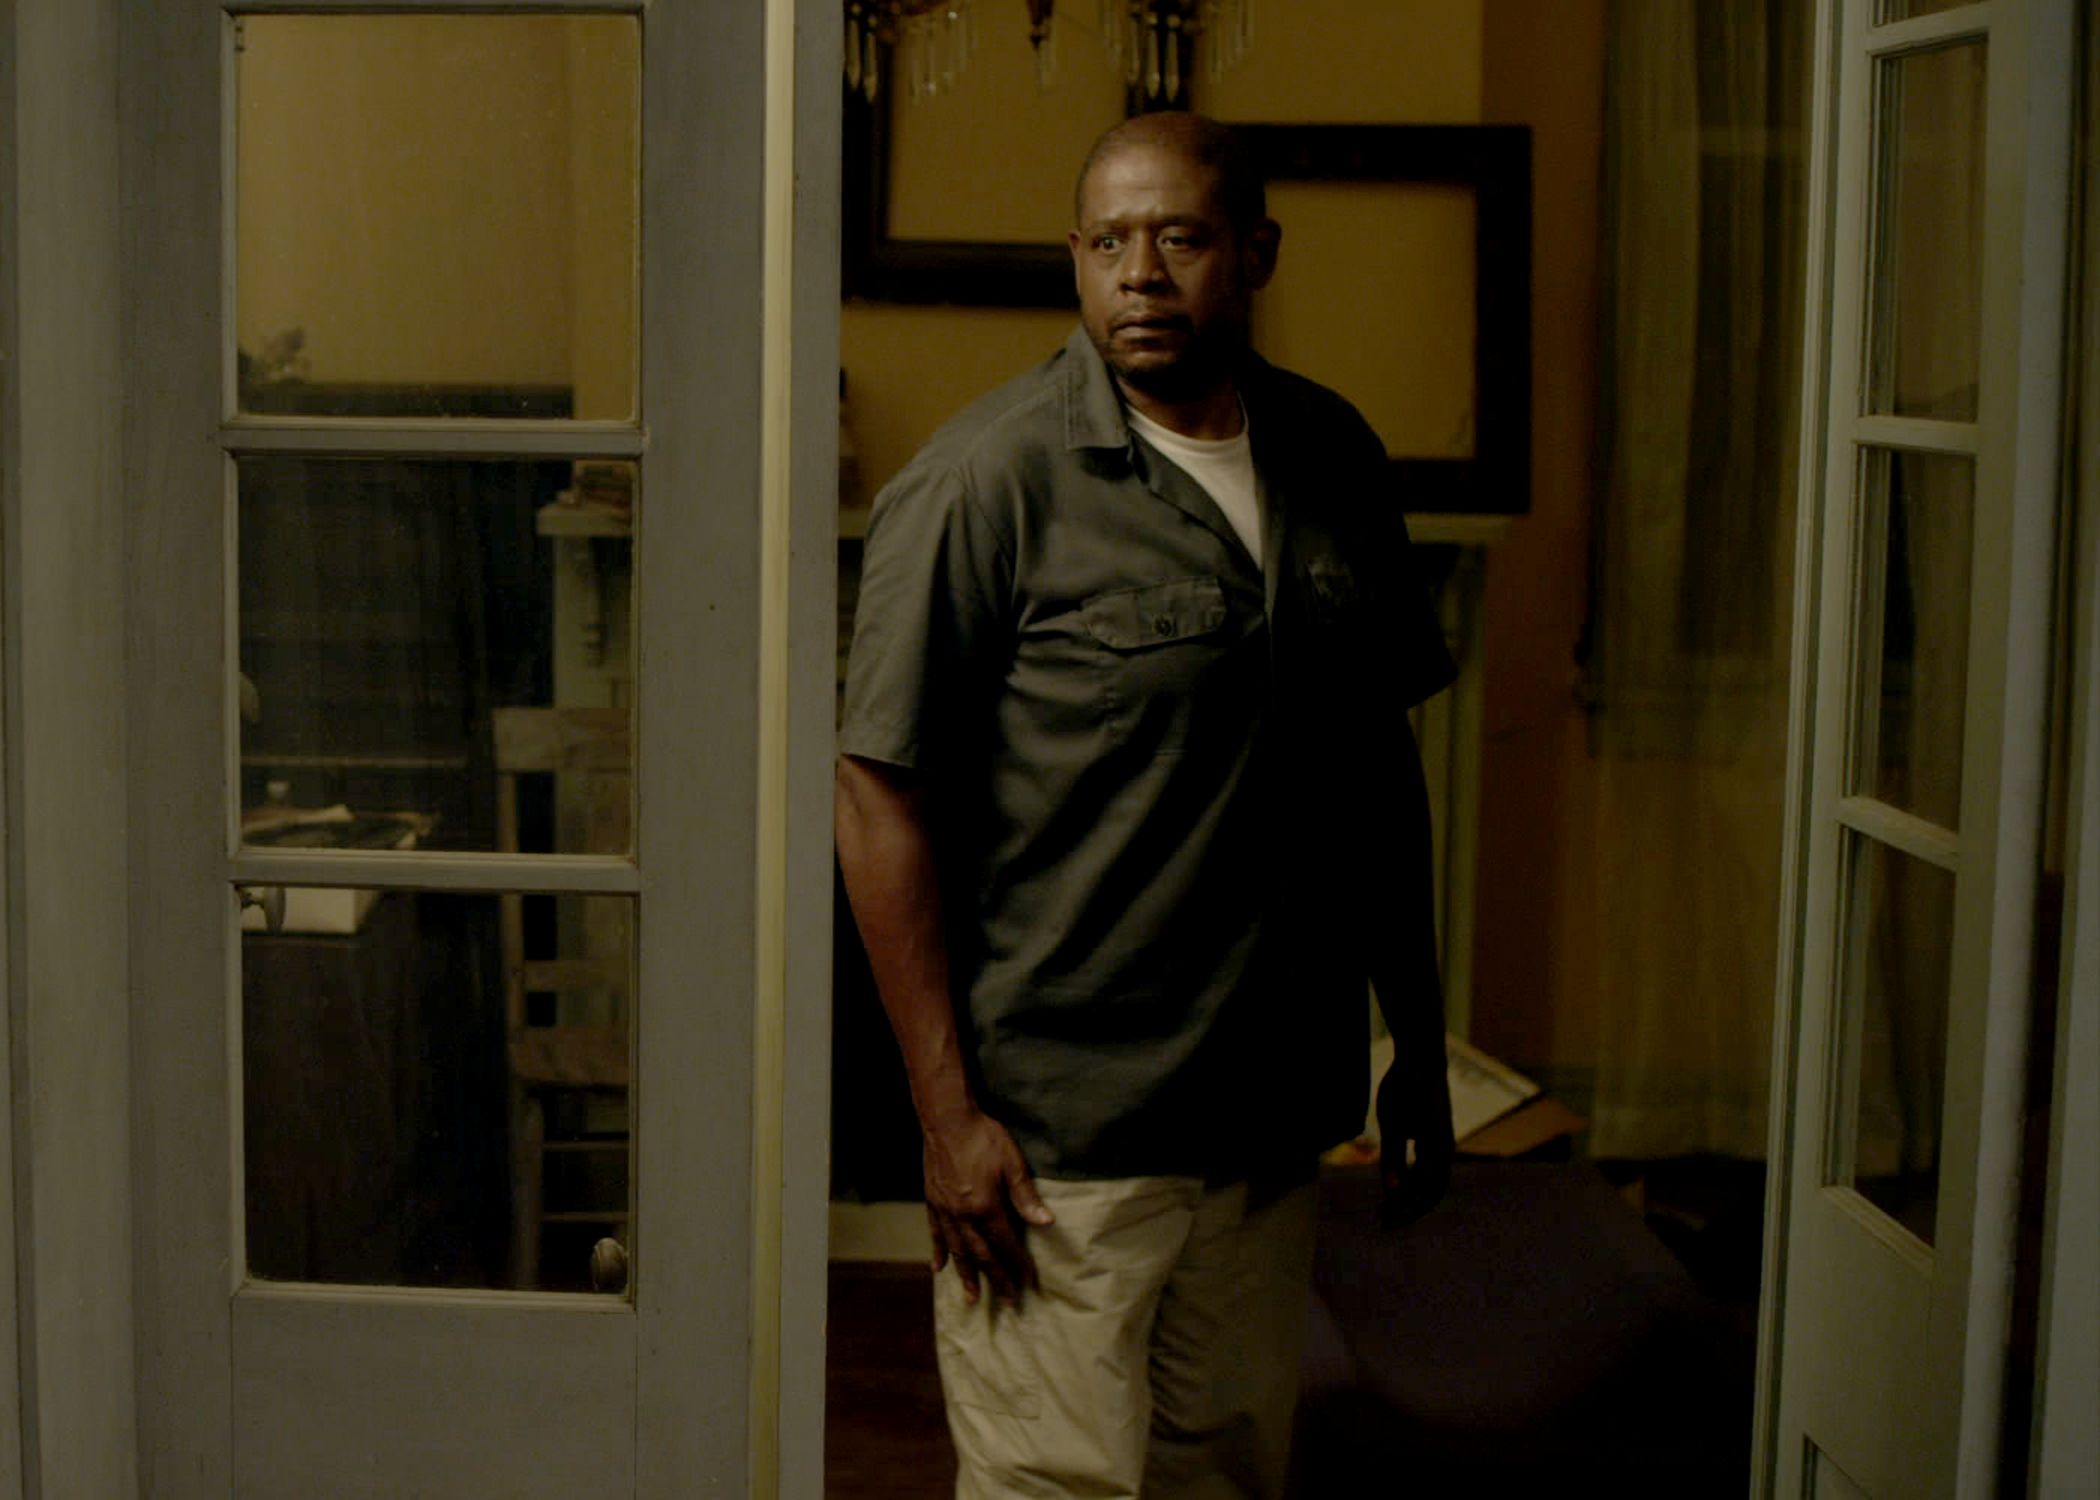 Six of the best forest whitaker performances heyuguys for The whitaker